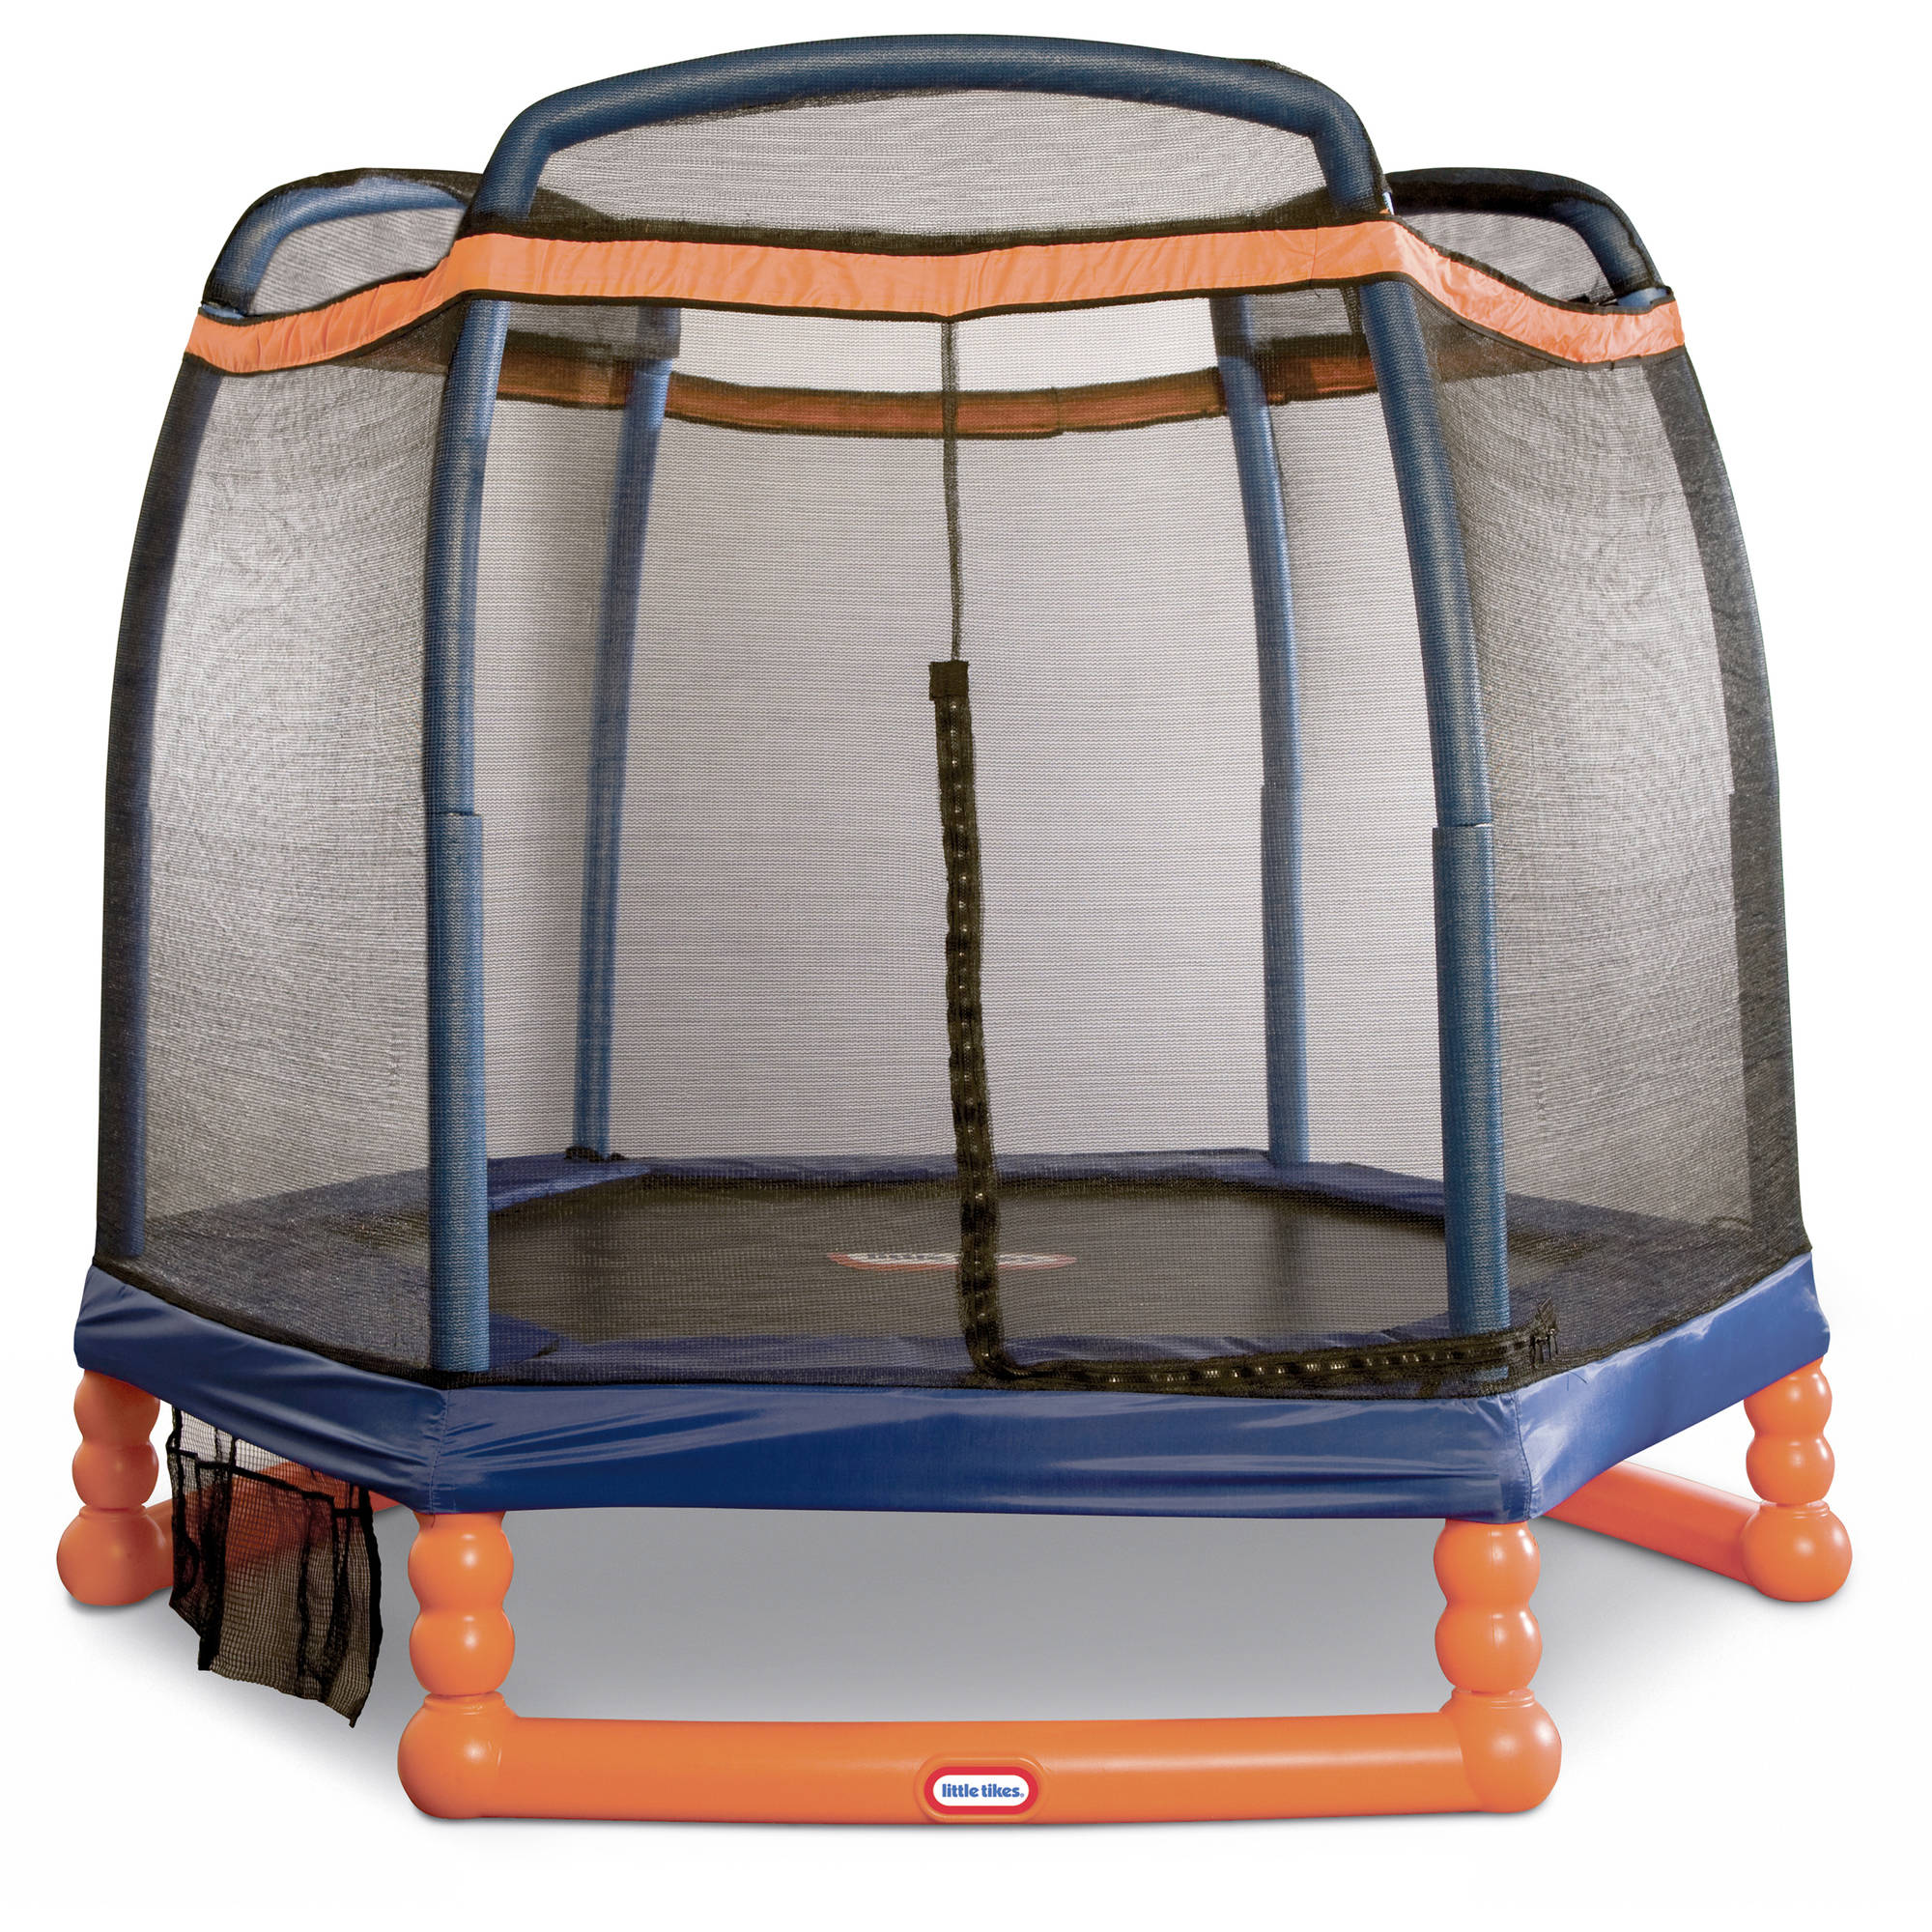 Little Tikes 7-Foot Trampoline, with Enclosure, Blue Orange by MGA Entertainment